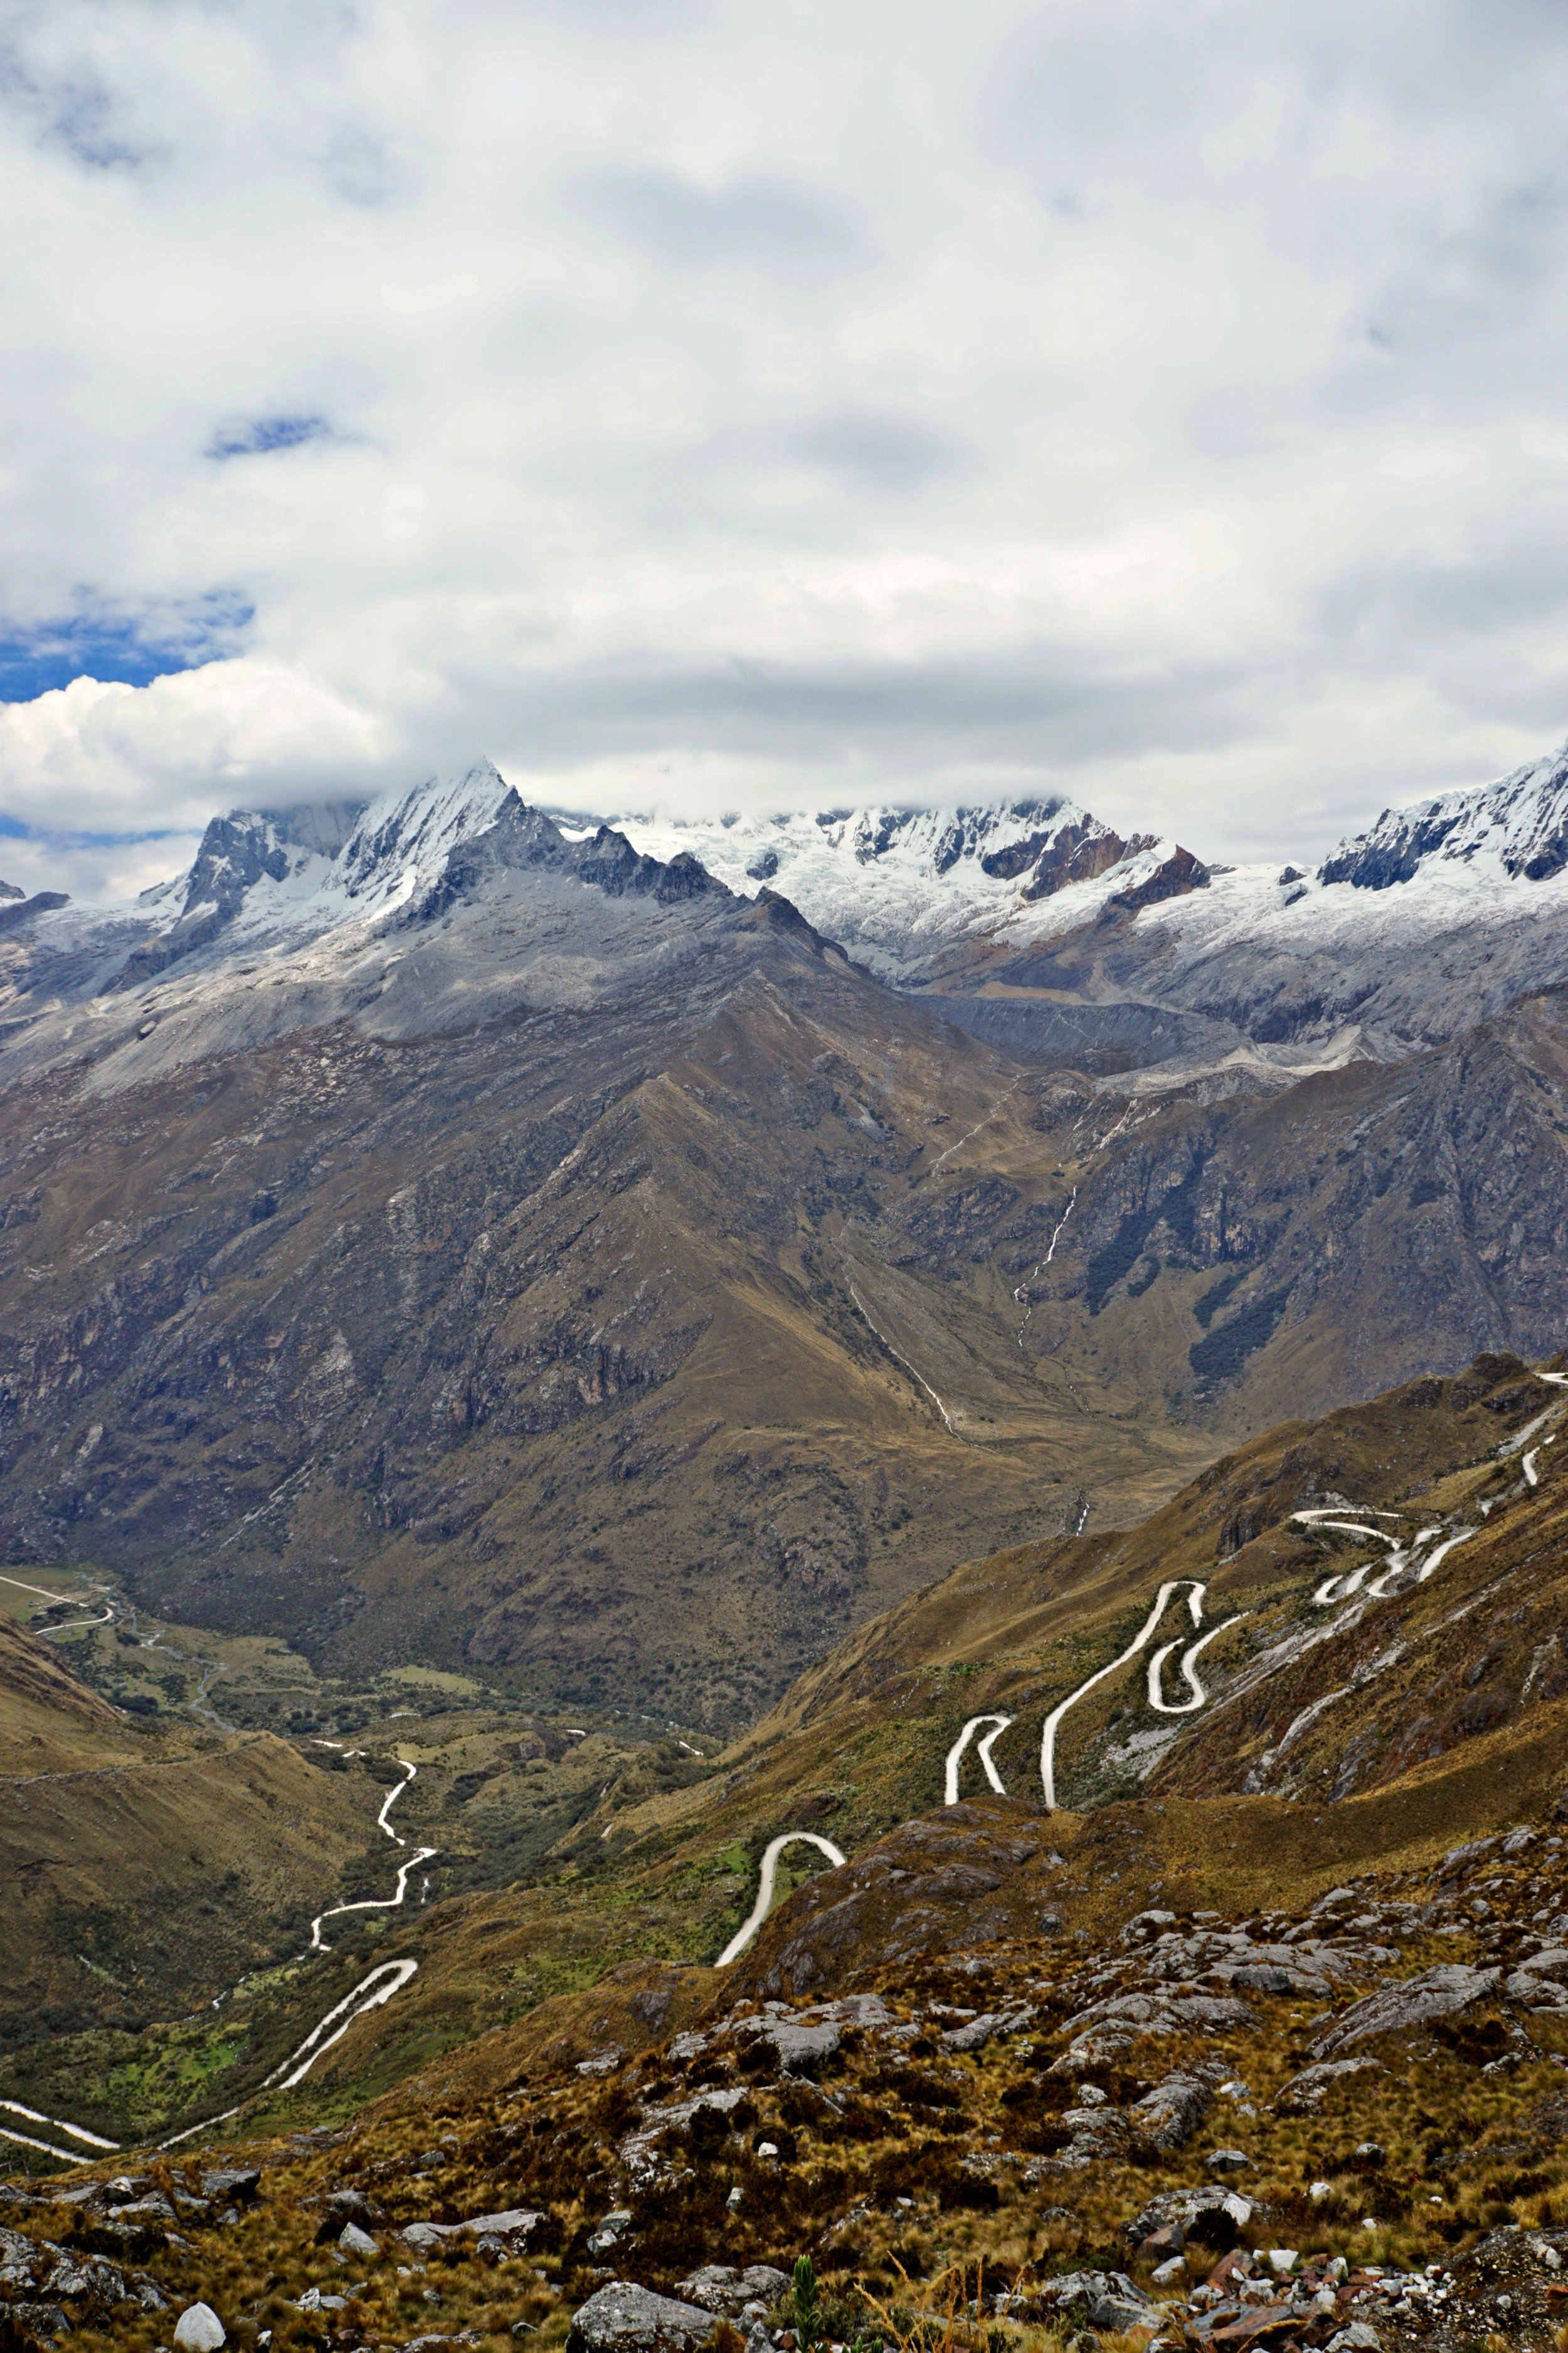 Heading out from Huascaran National Park